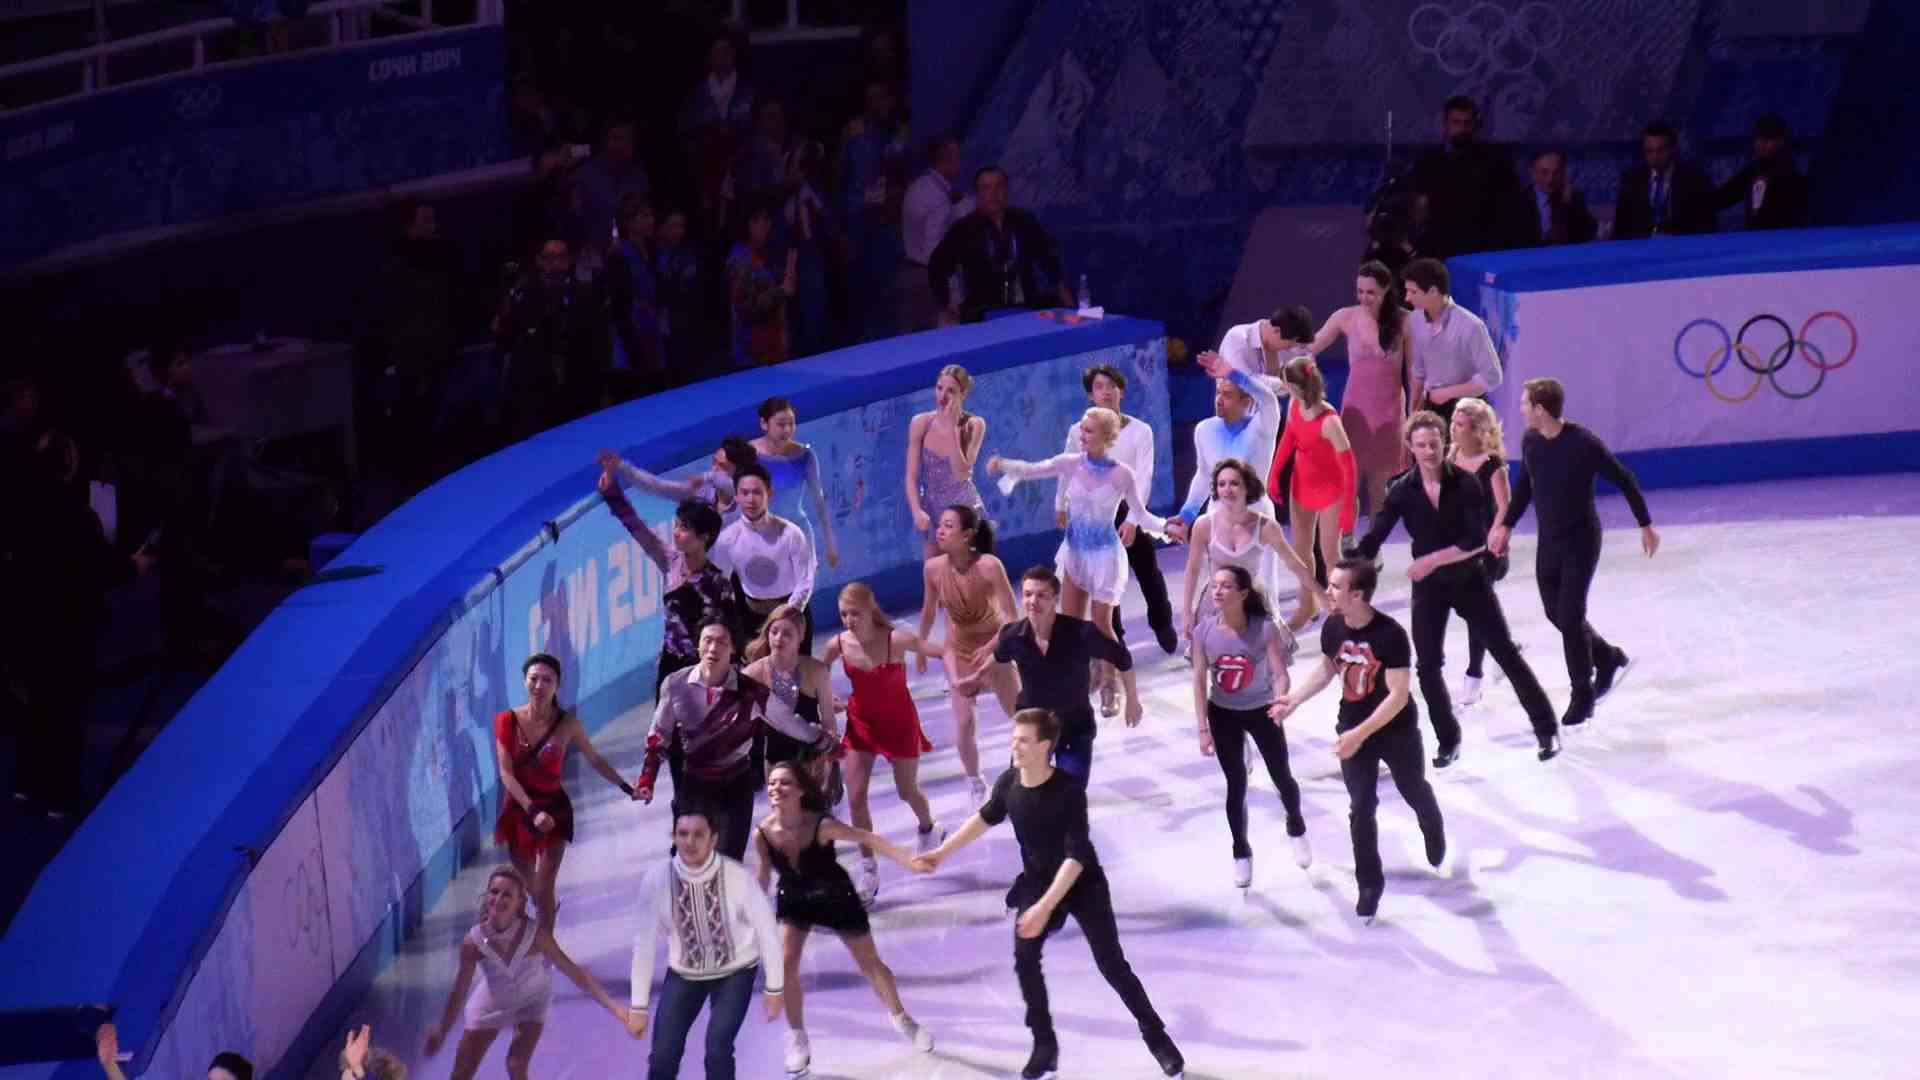 [Fan cam] Yuna Kim in Gala Exbition Finale in Sochi 2014 Winter Olympics - YouTube